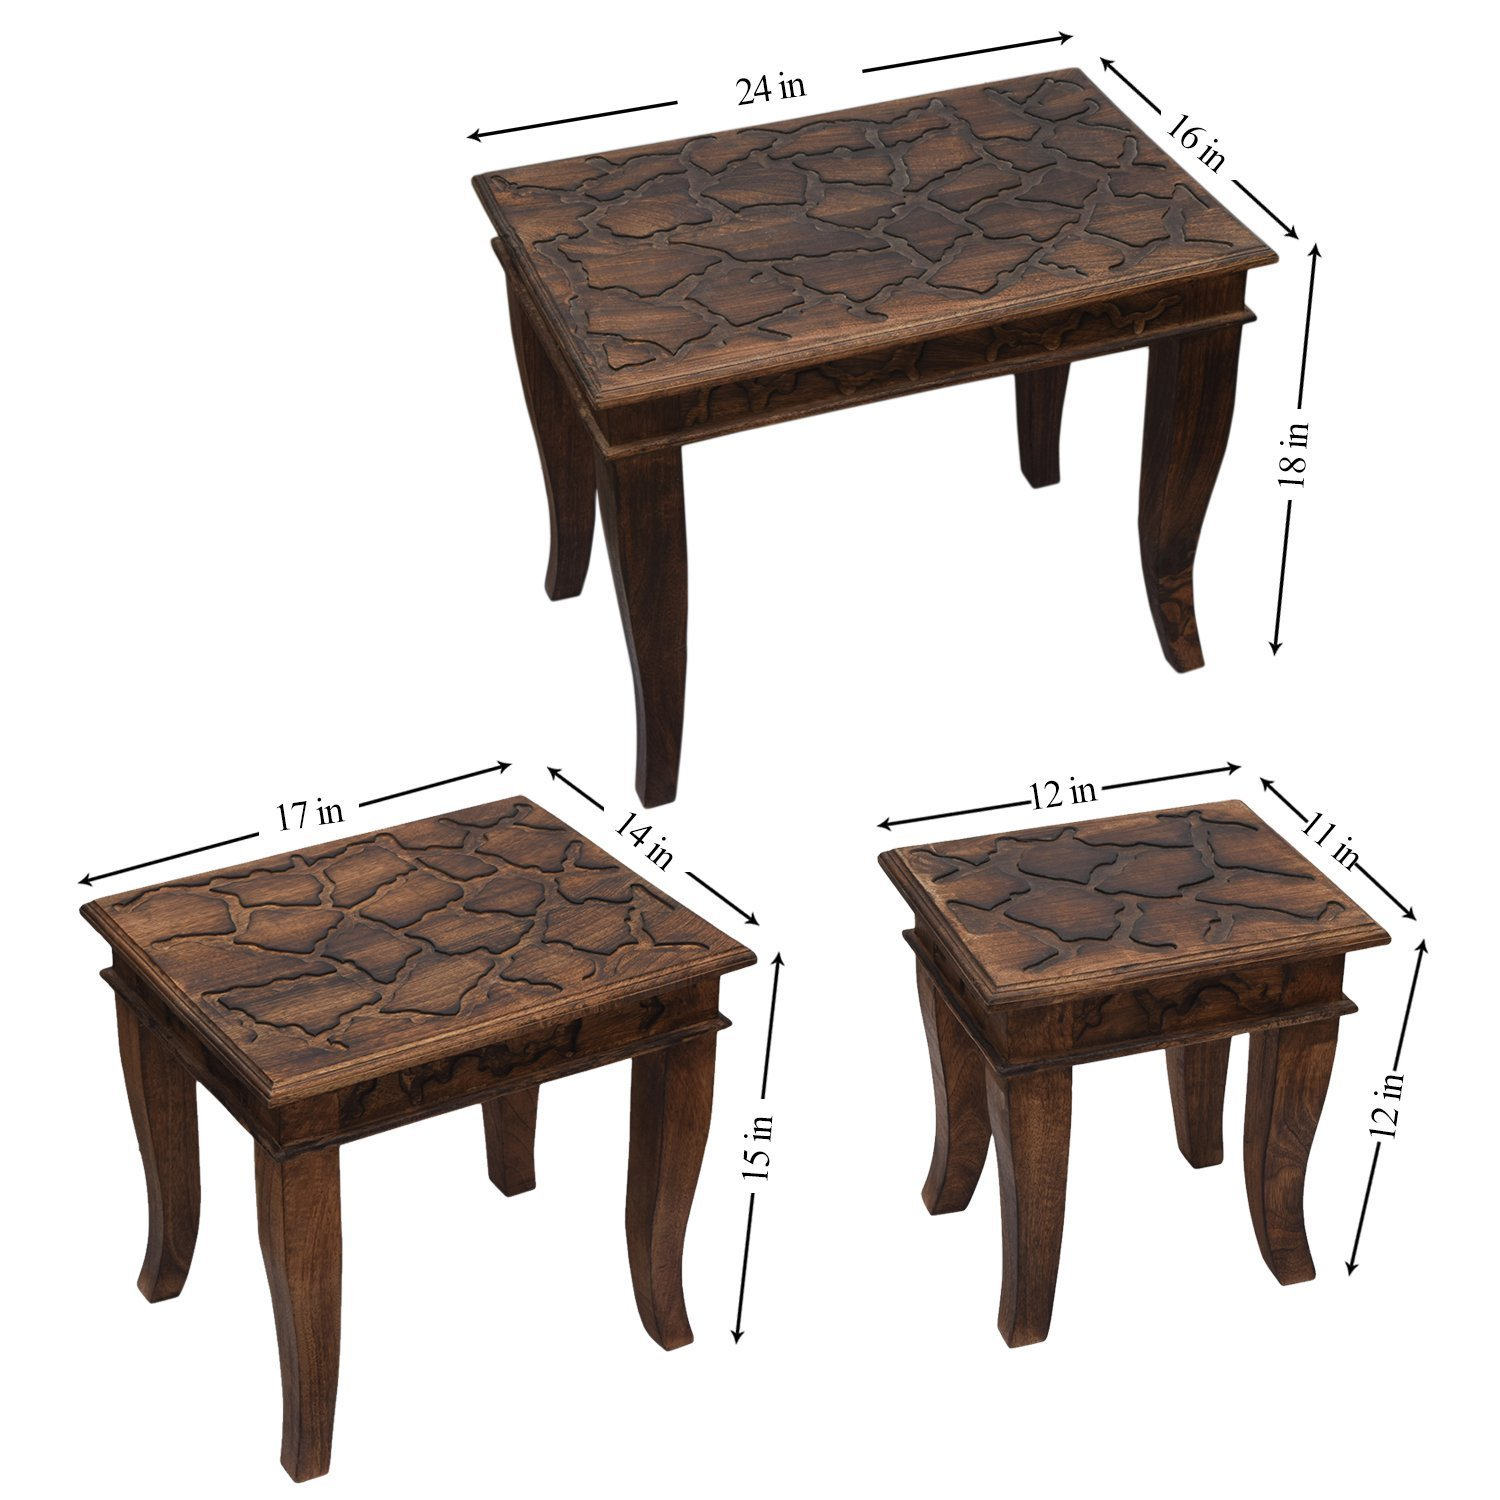 Store Indya Set of 3 Wooden Nesting Tables Stackable Sitting Stools Hand Carved with Distressed Carvings and Rustic Finish Home Kids Nursery Room Furniture Decor